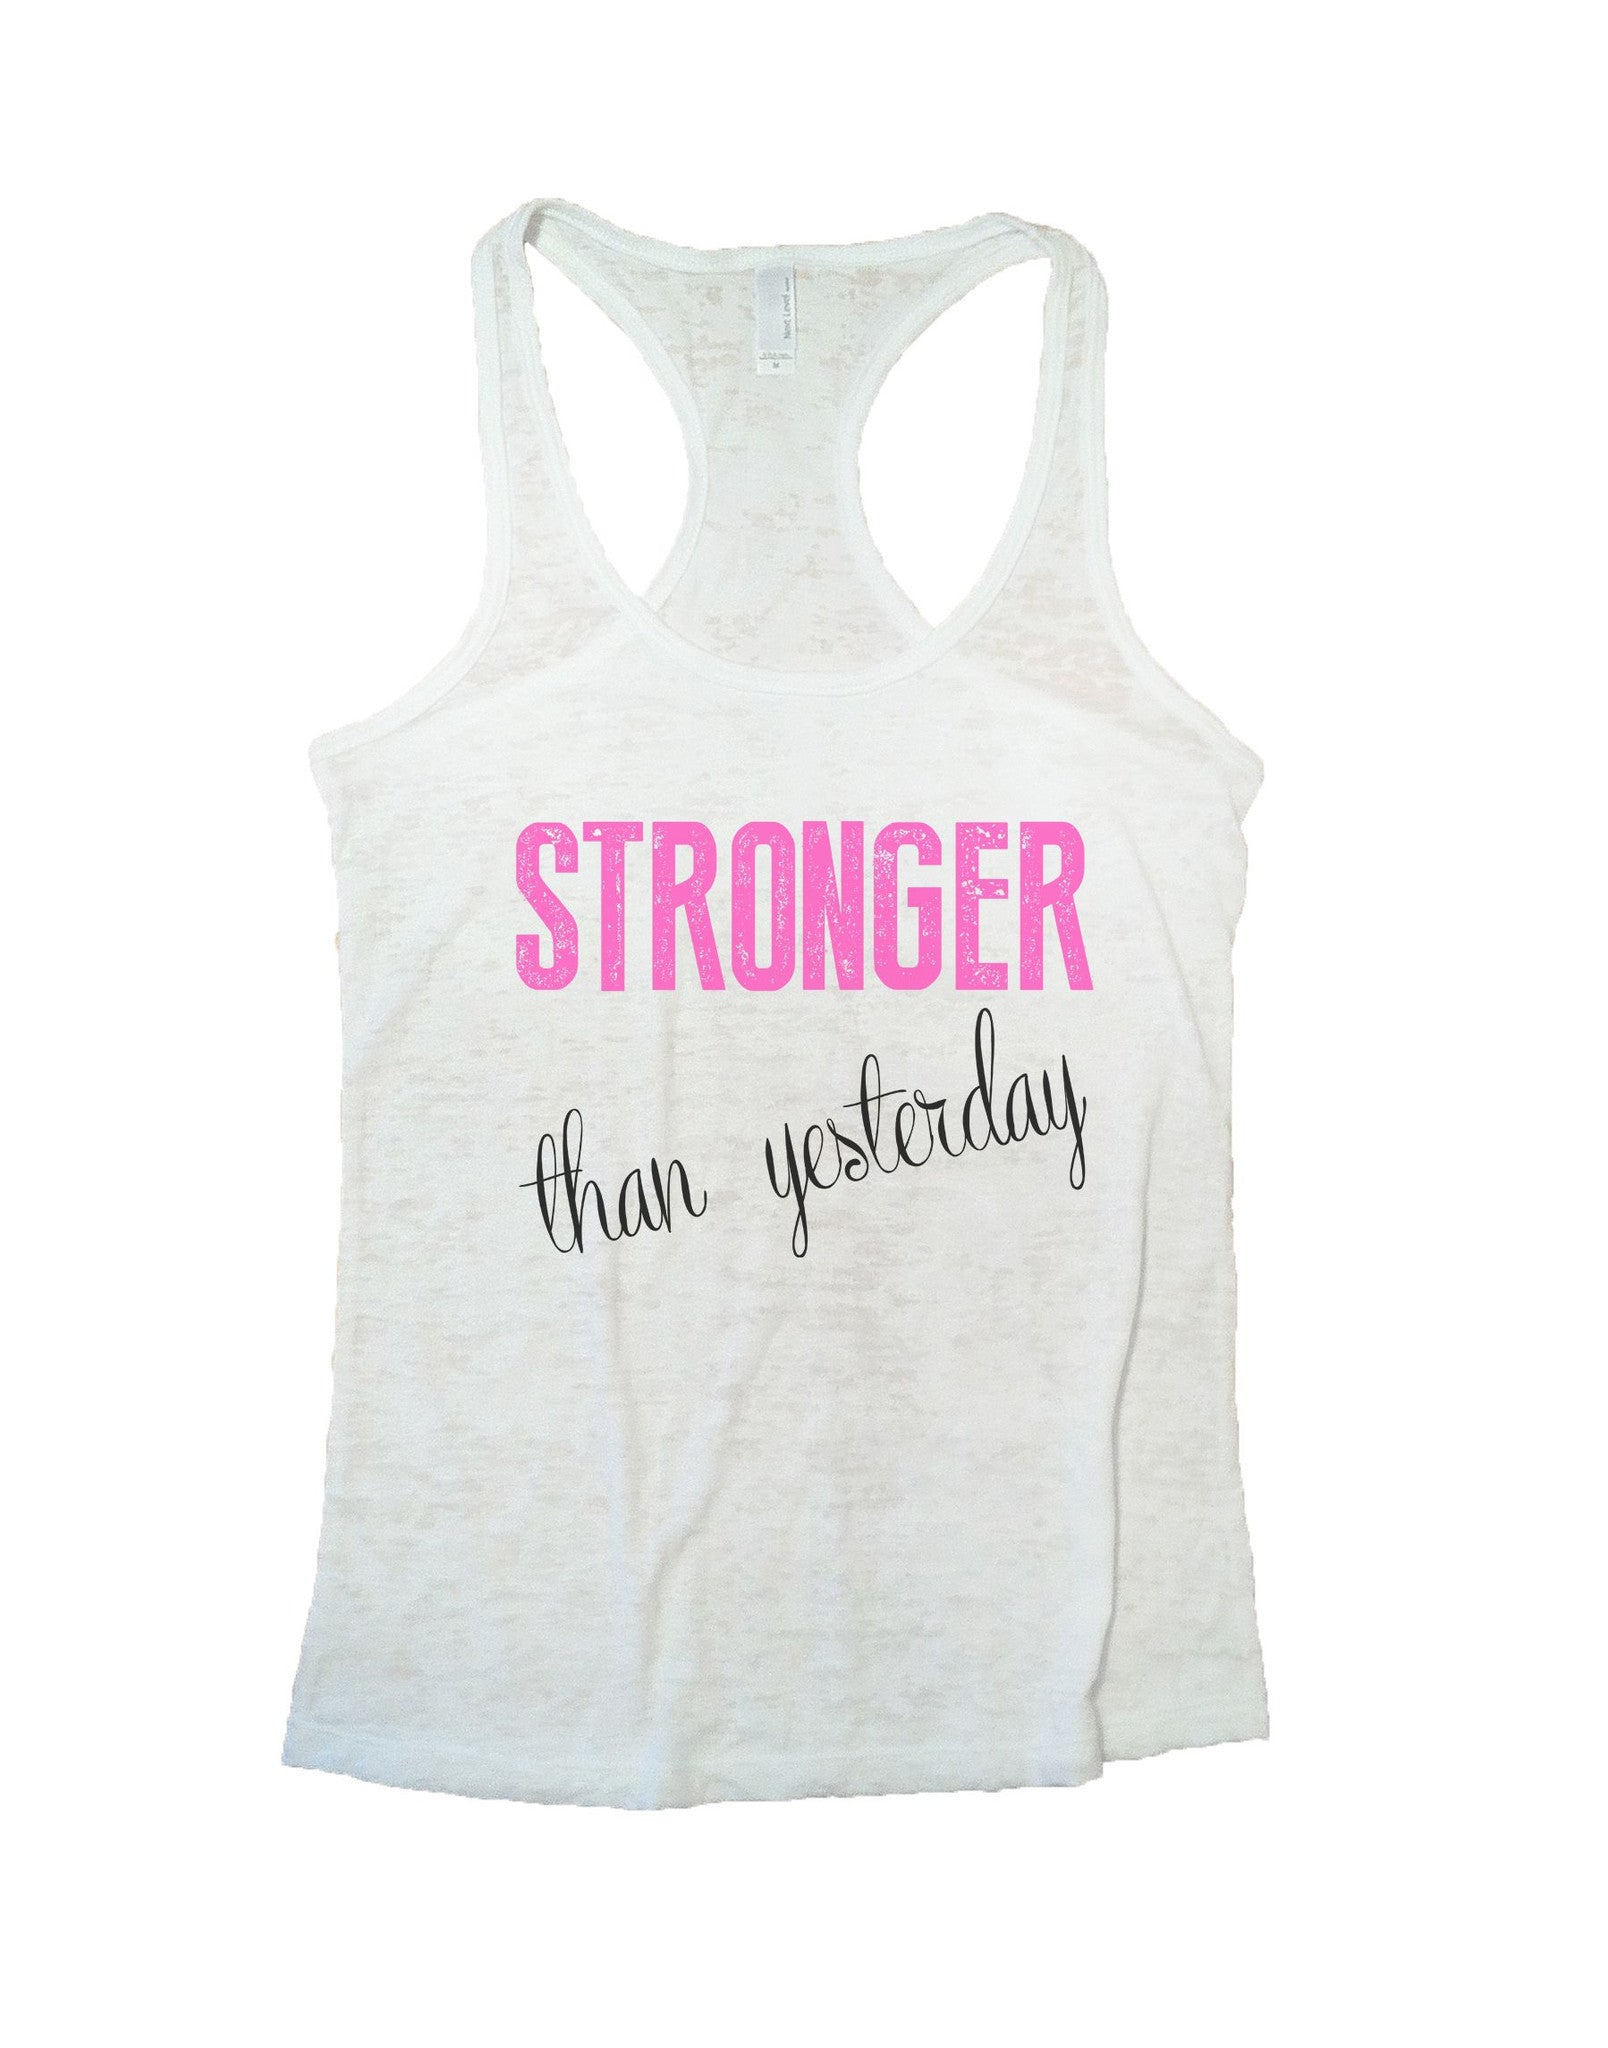 Stronger Than Yesterday Burnout Tank Top By BurnoutTankTops.com - 768 - Funny Shirts Tank Tops Burnouts and Triblends  - 6